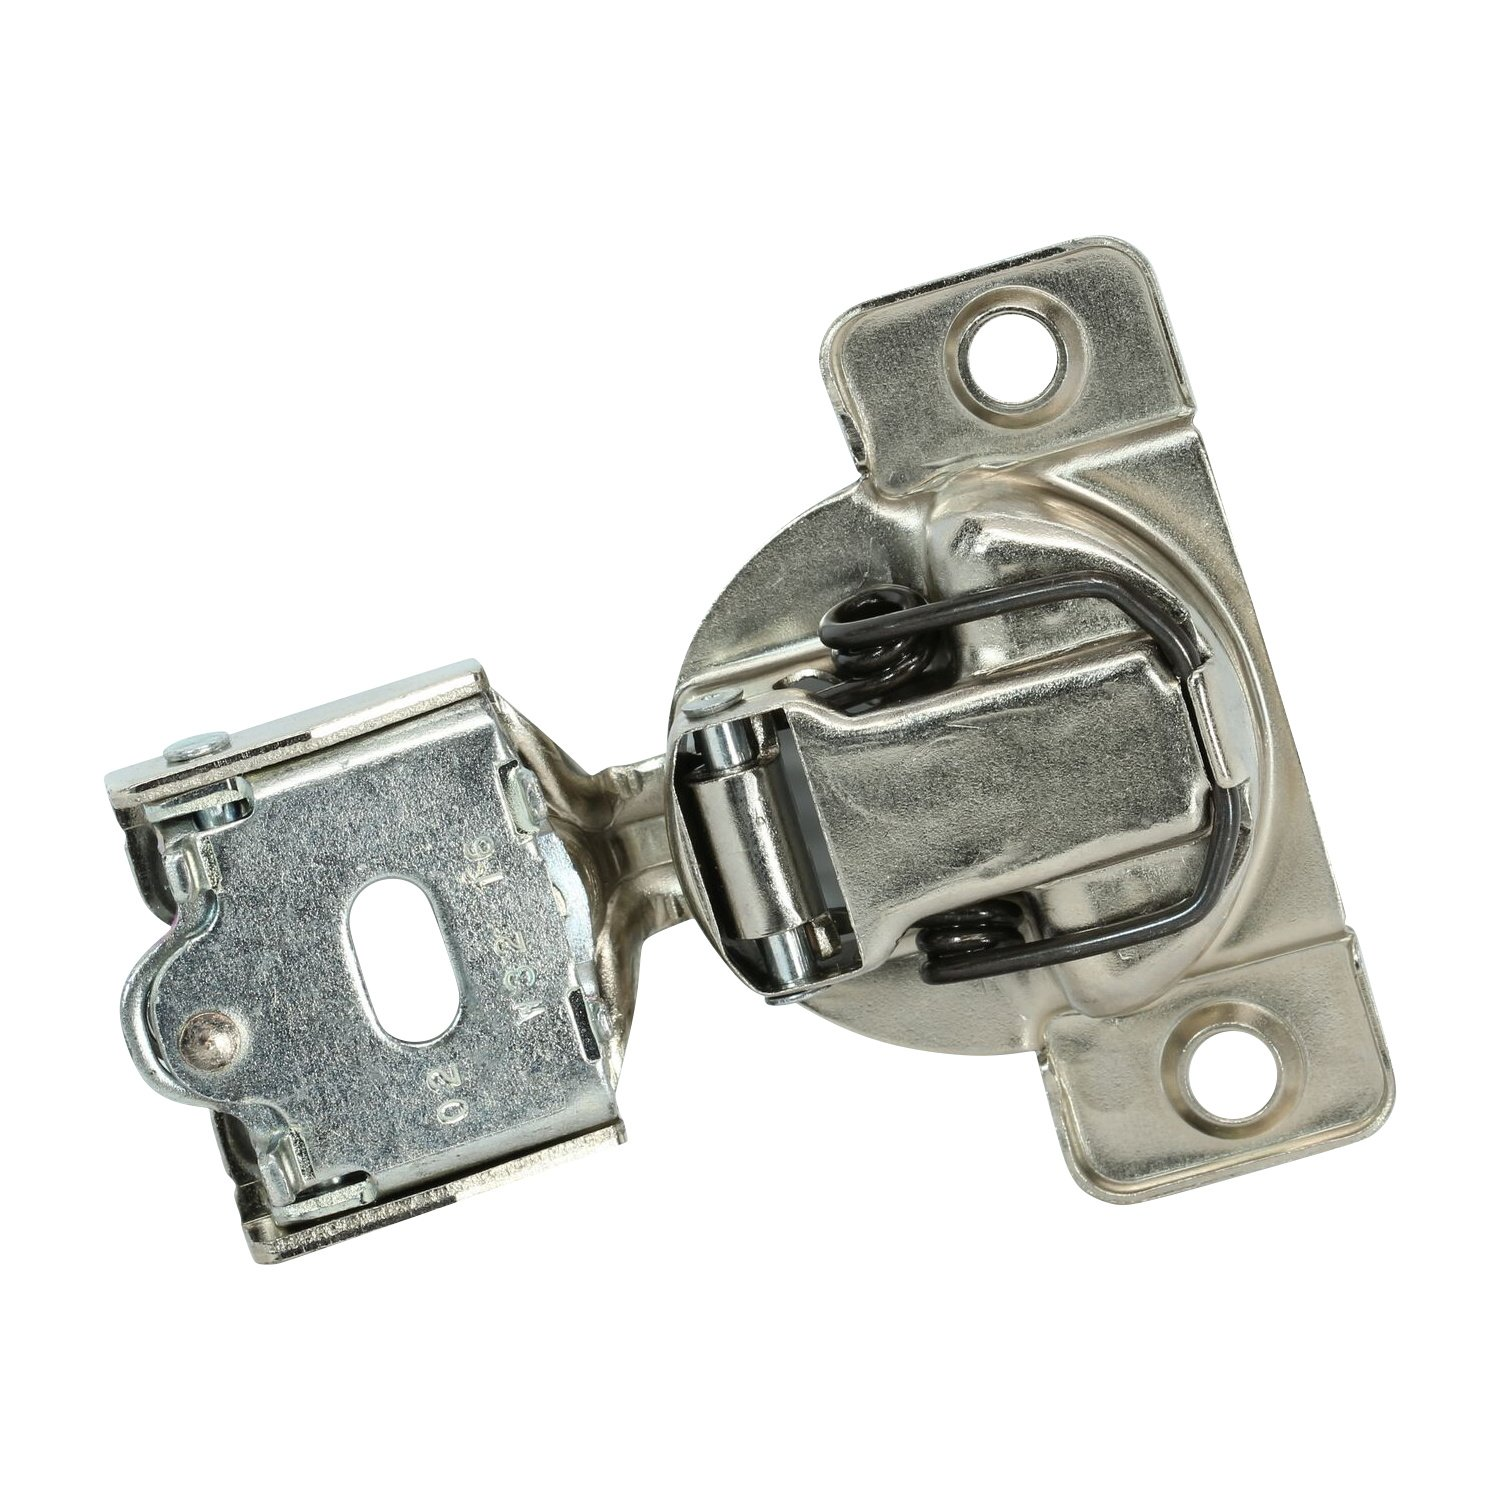 25 Pack Rok Hardware Grass TEC 864 108 Degree 1//4 Overlay 3 Level Soft Close Screw On Compact Cabinet Hinge 04429A-15 3-Way Adjustment 45mm Boring Pattern G04429A-15-25